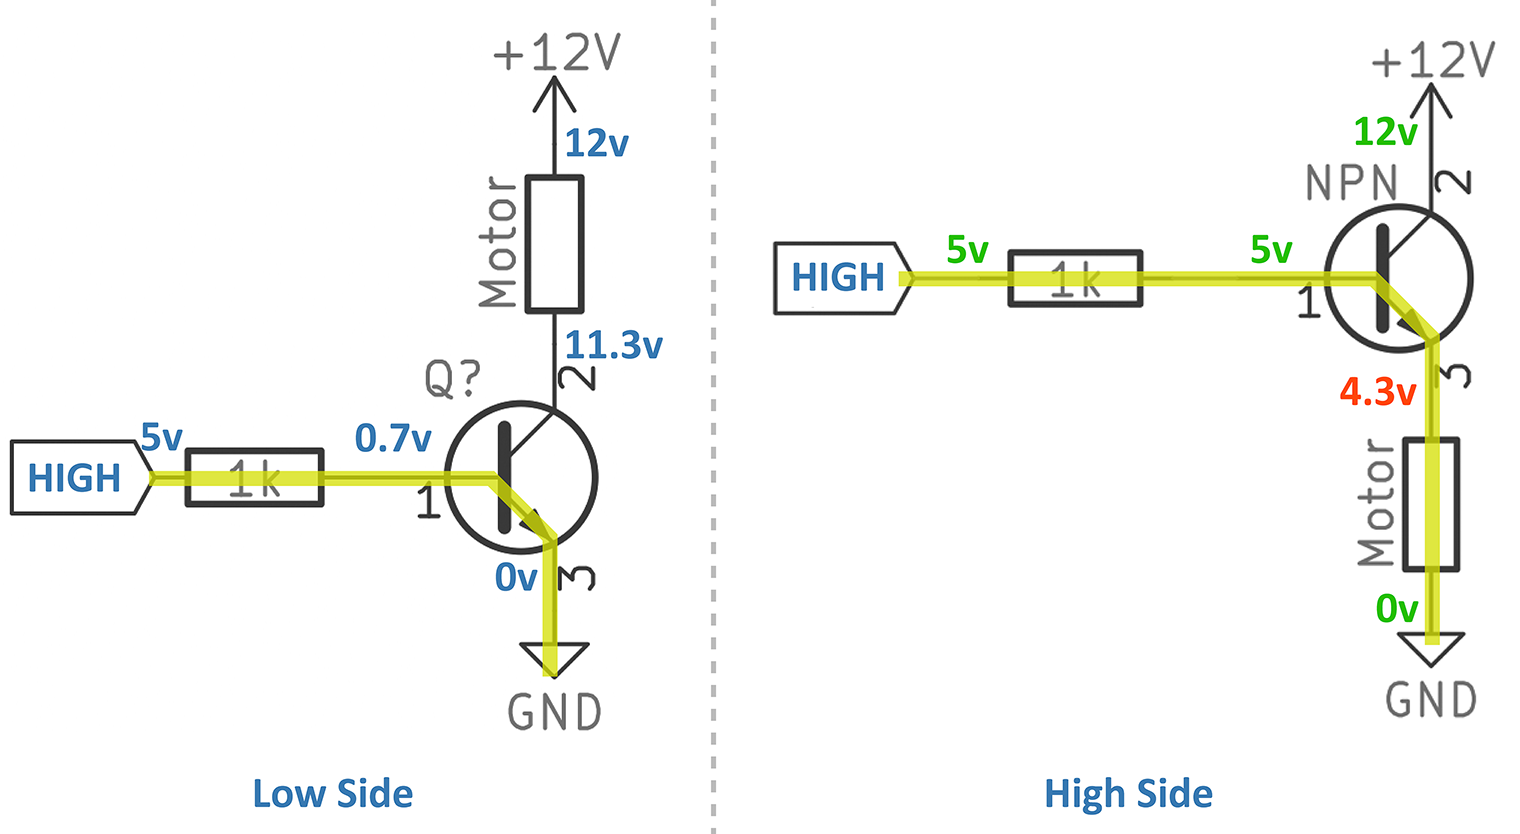 NPN Low Side vs High Side Switch